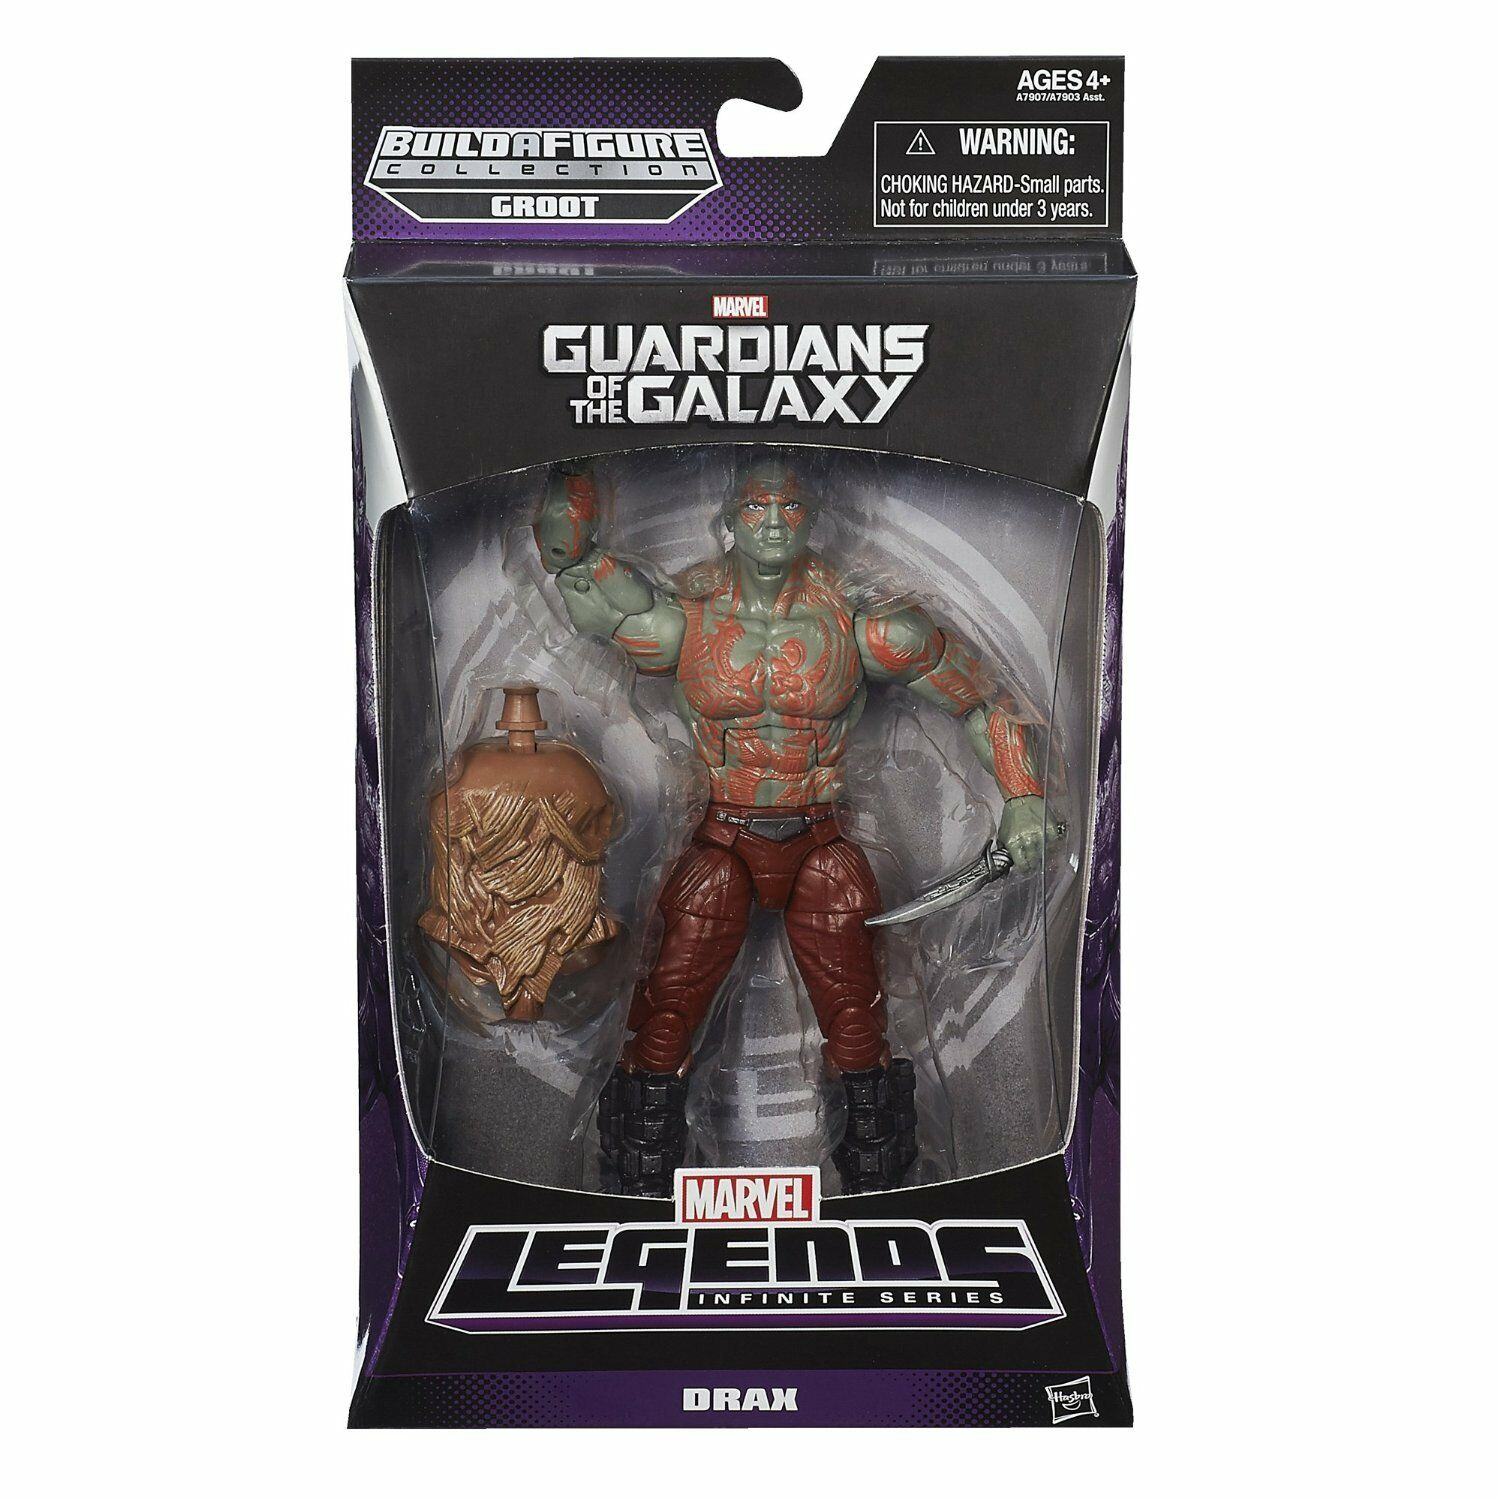 MARVEL LEGENDS INFINITE GUARDIANS OF THE GALAXY DRAX FIGURE BUILD GROOT BAF